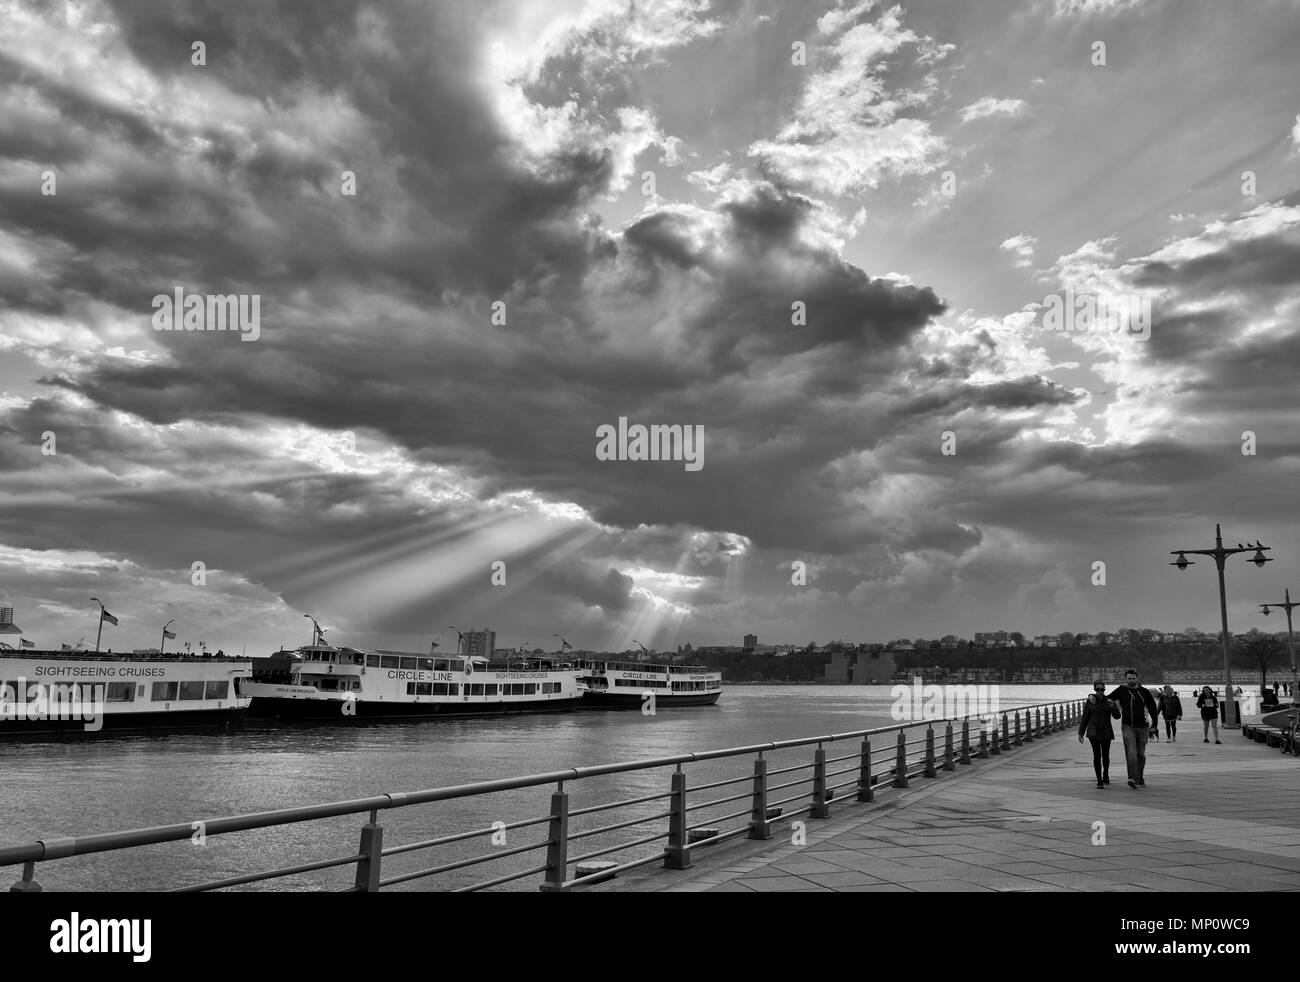 New York City, New York, USA - People walking along the Hudson Park Pier 84. - Stock Image